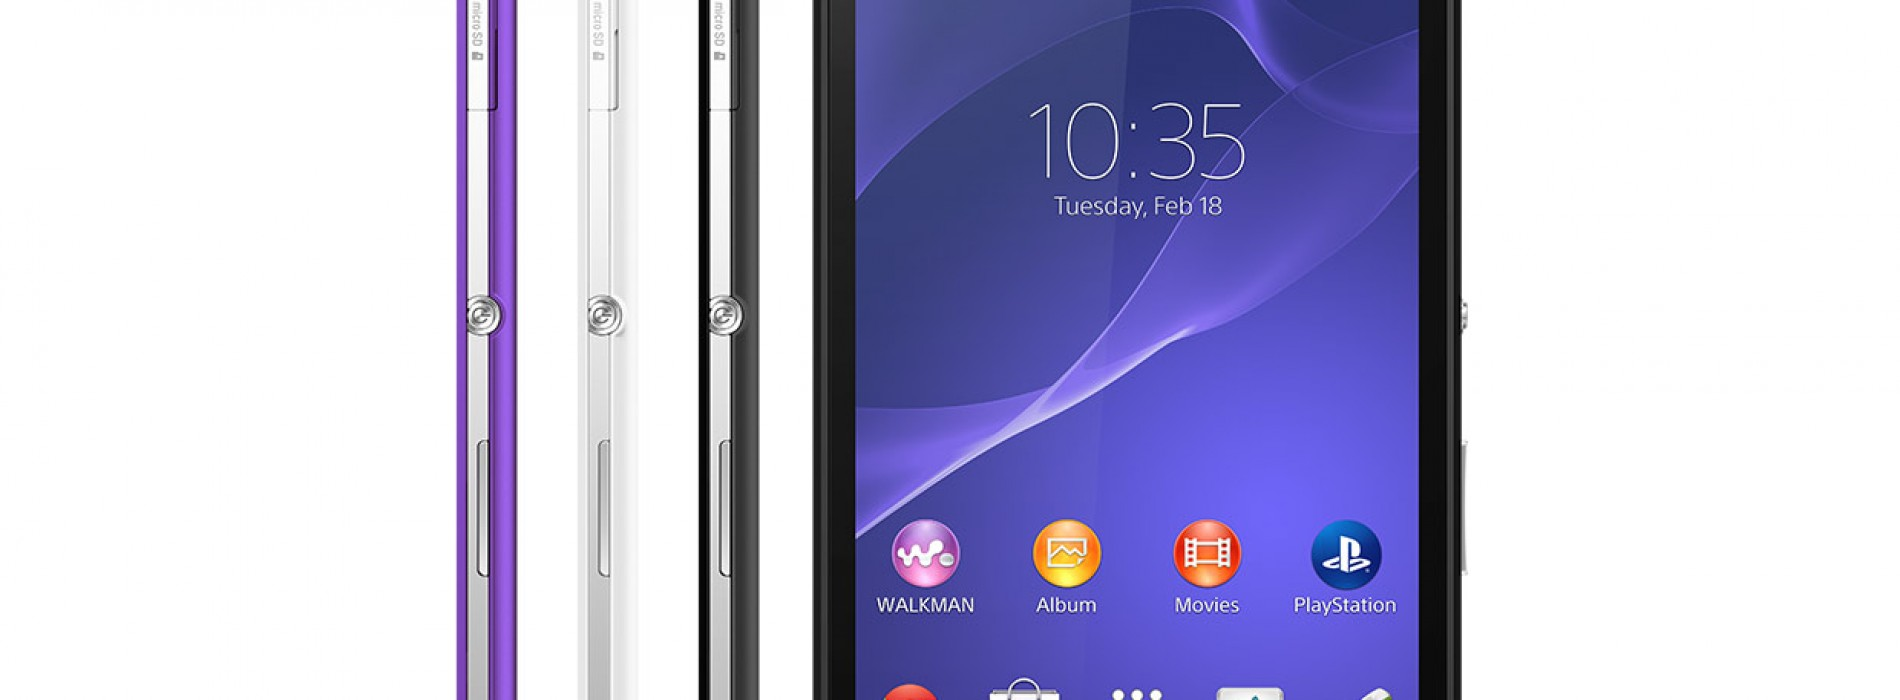 Sony unveils the ultra-thin mid-range Xperia T3